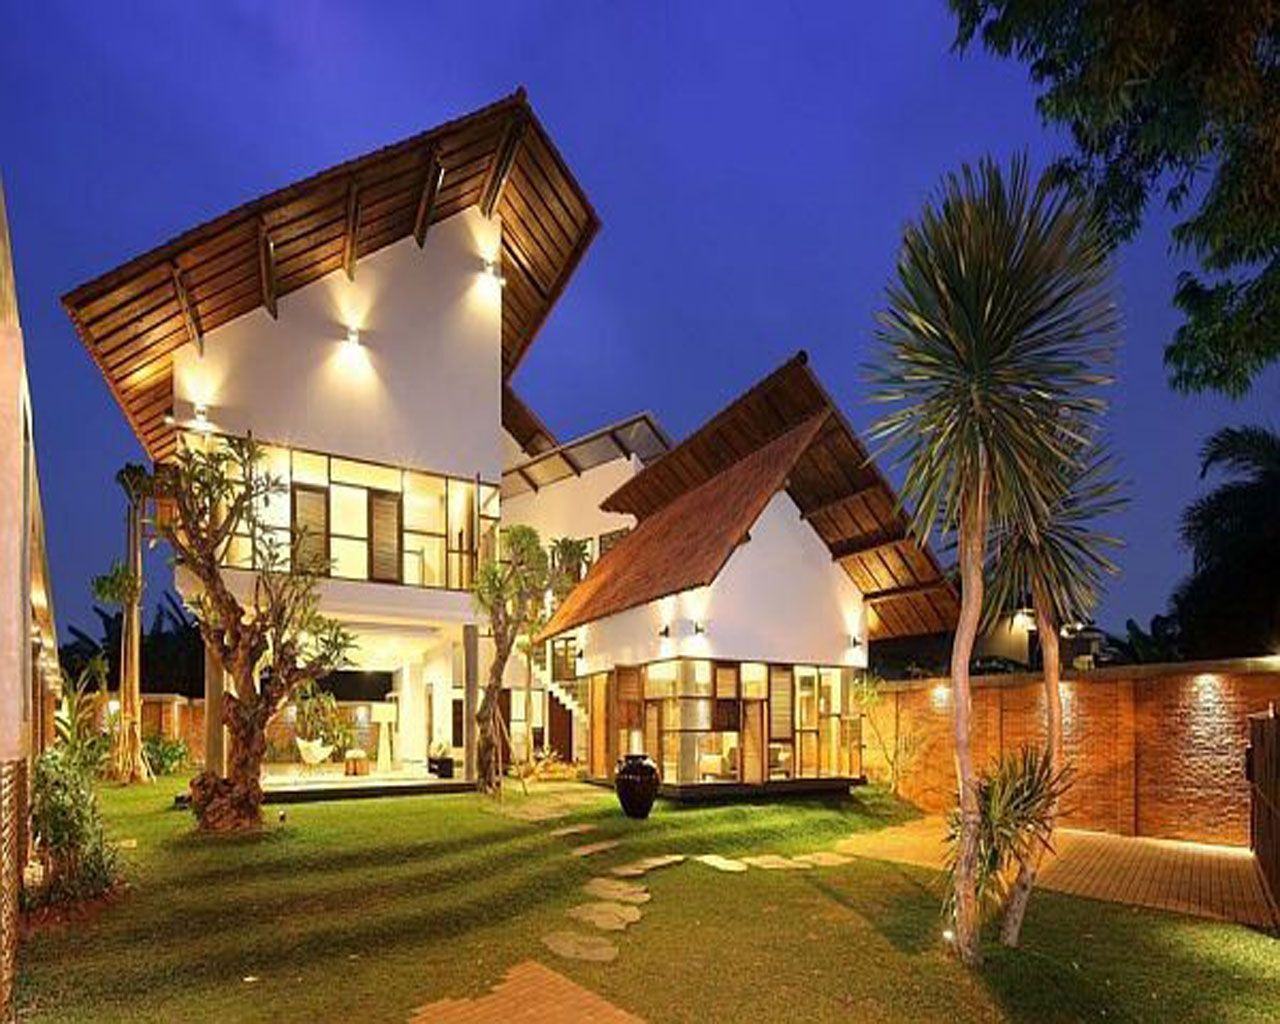 Architecture ideas 30 inspiration tropical house design for House interior design jakarta